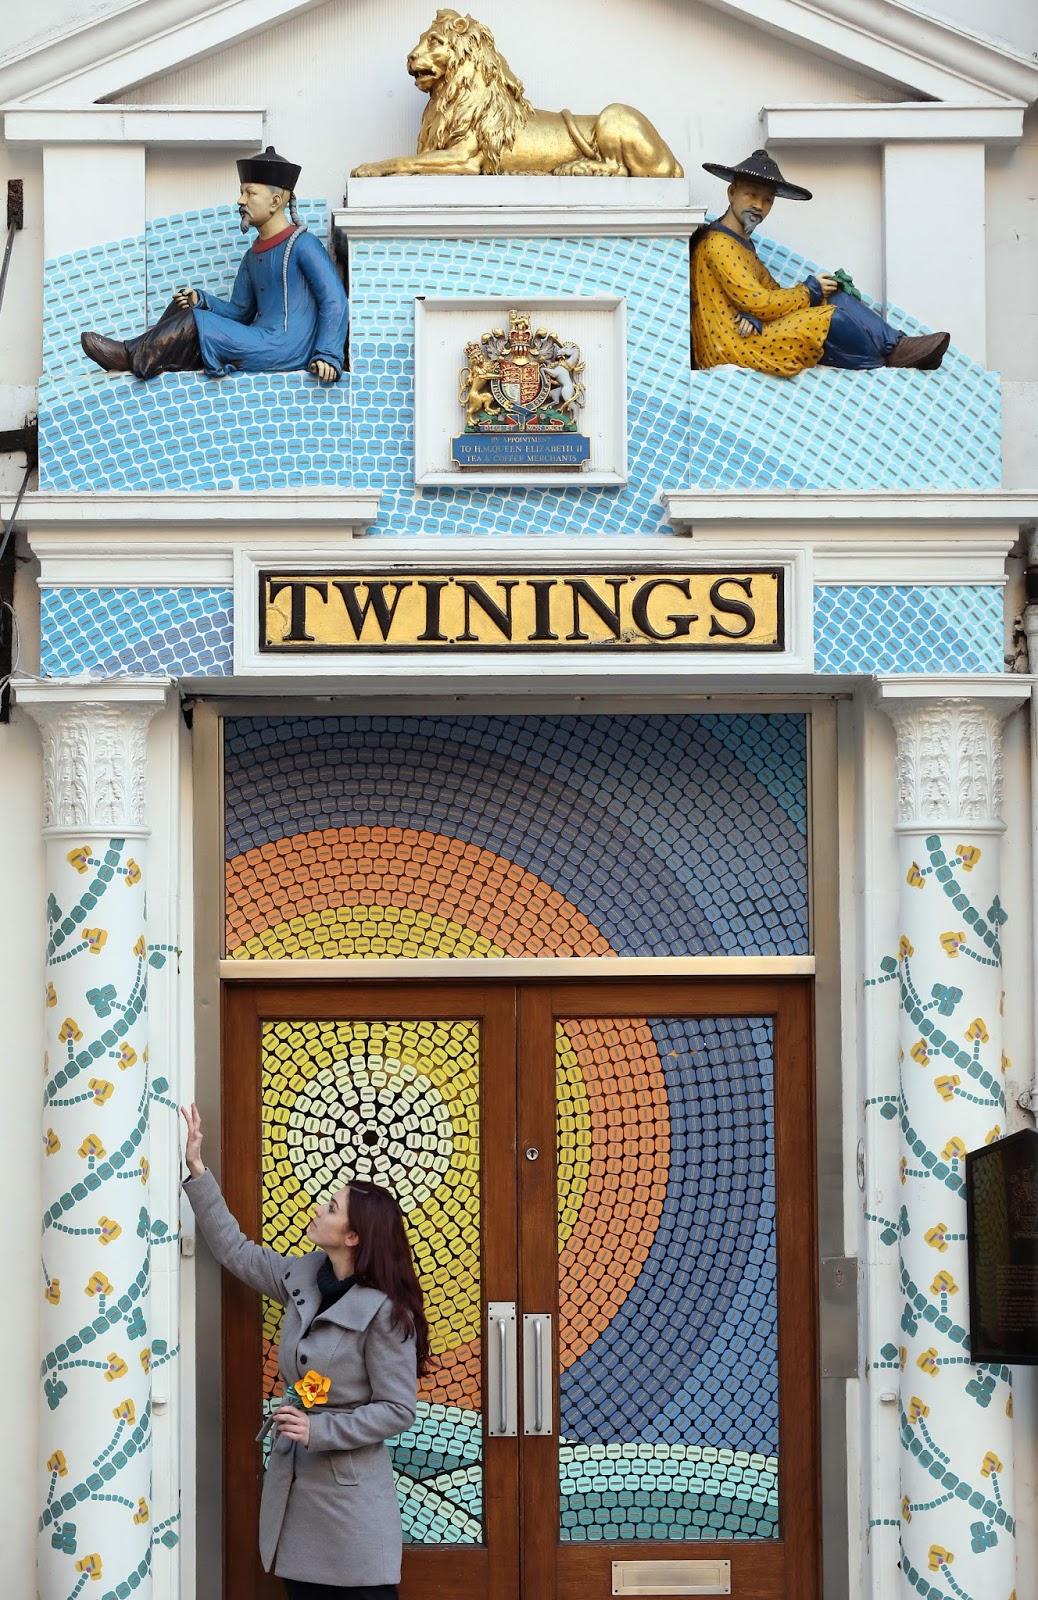 twinings strand store decorated with thousands of teabags